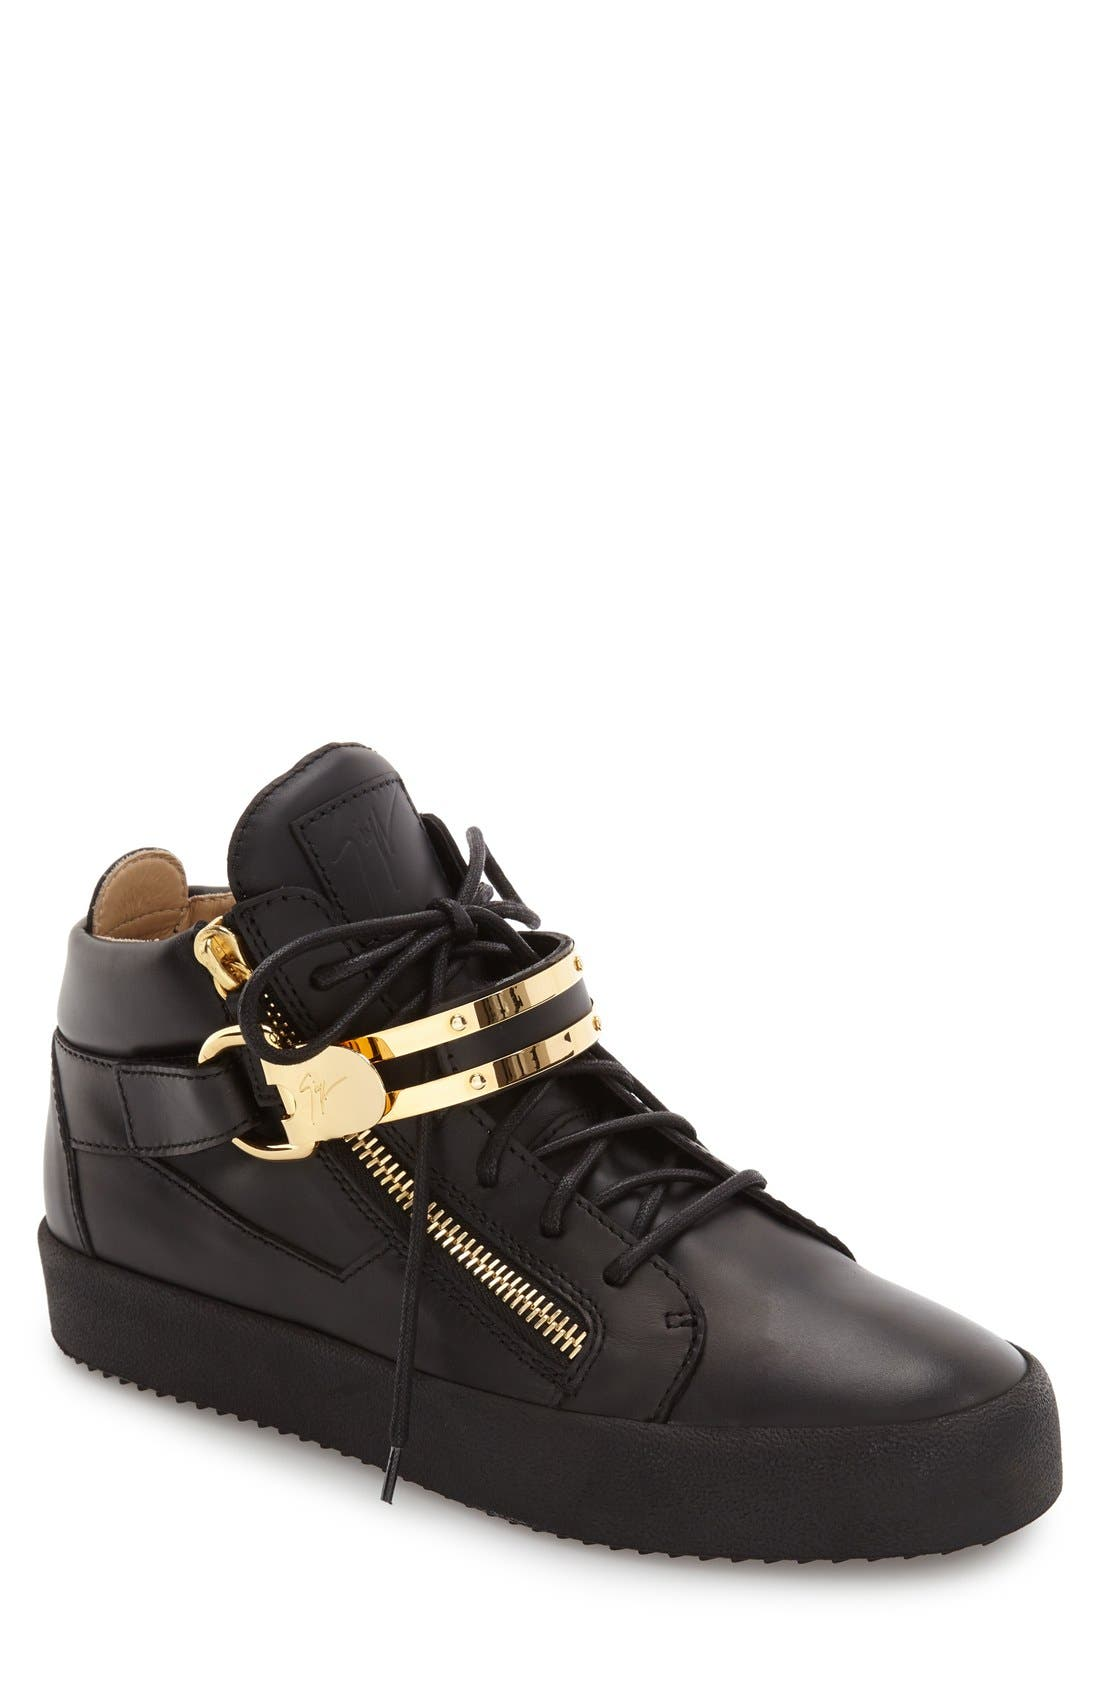 Main Image - Giuseppe Zanotti Side Zip High Top Sneaker (Men)